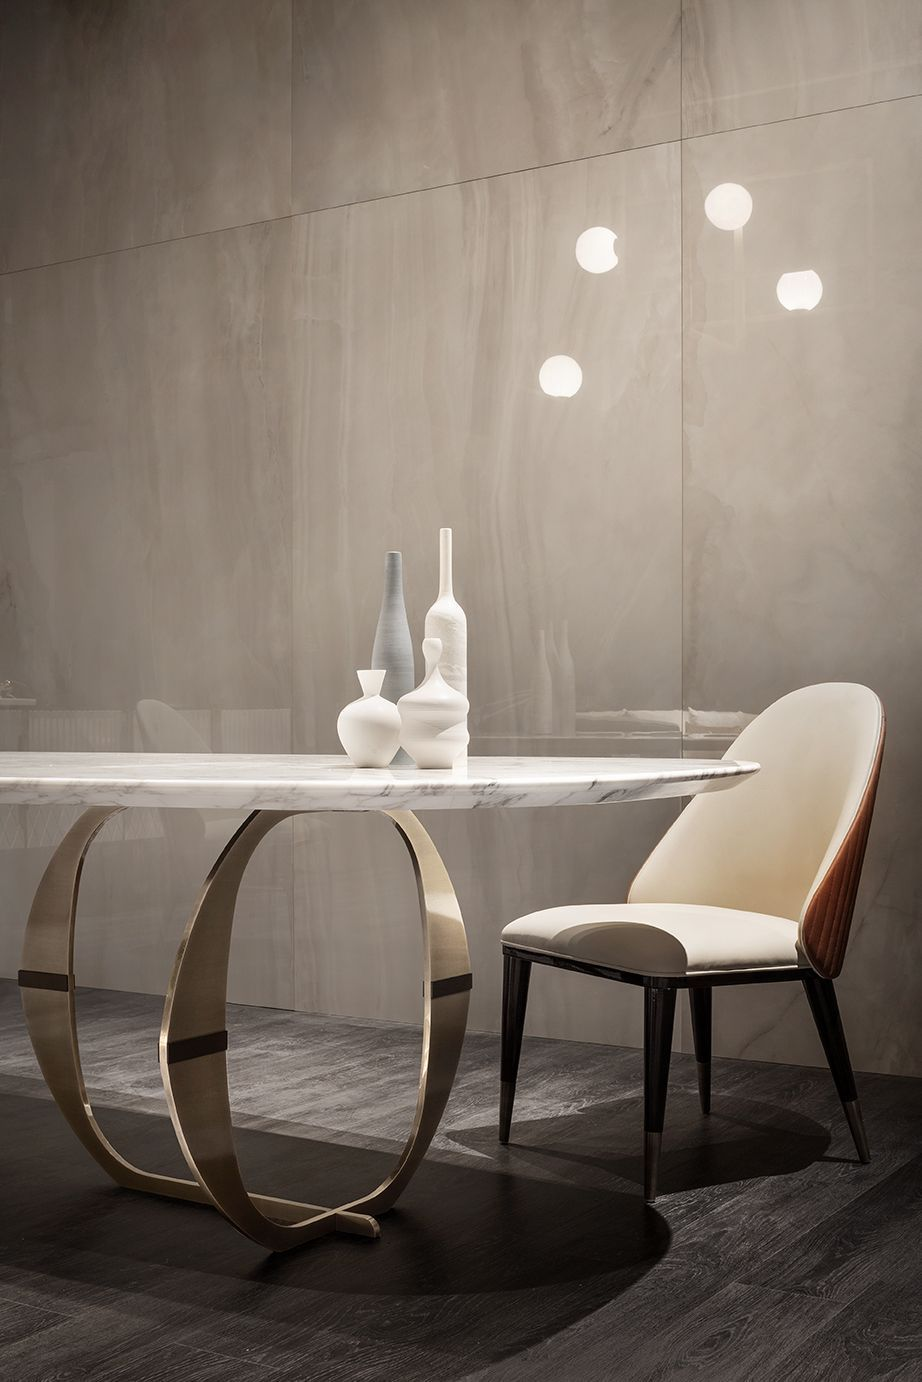 31 Of The Most Brilliant Modern Dining Table Design Ideas Luxury